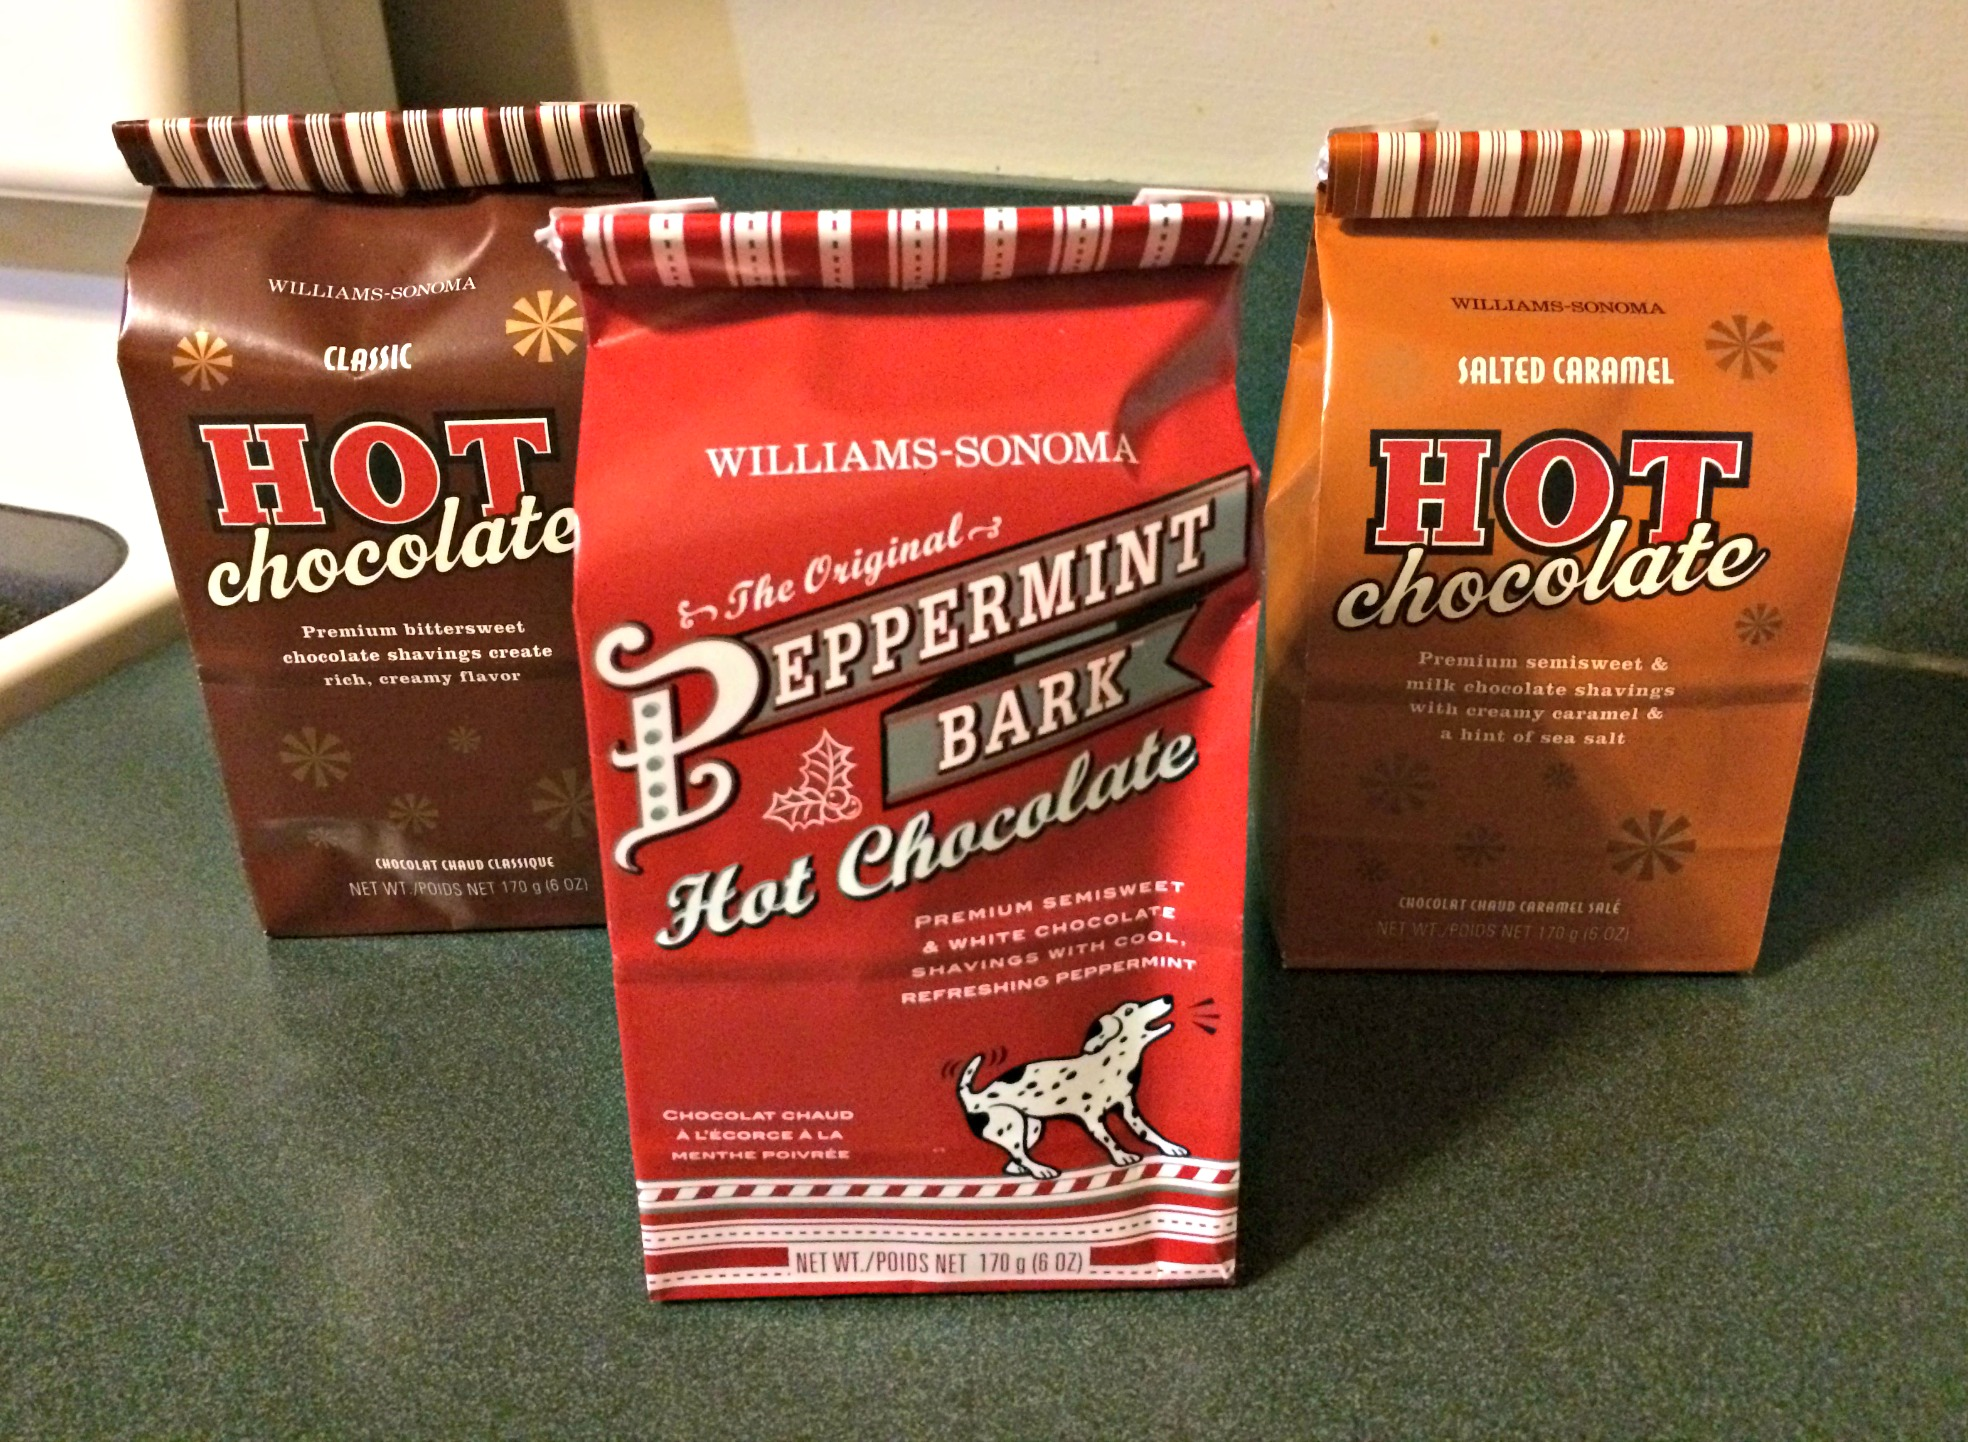 williams-sonoma hot chocolate